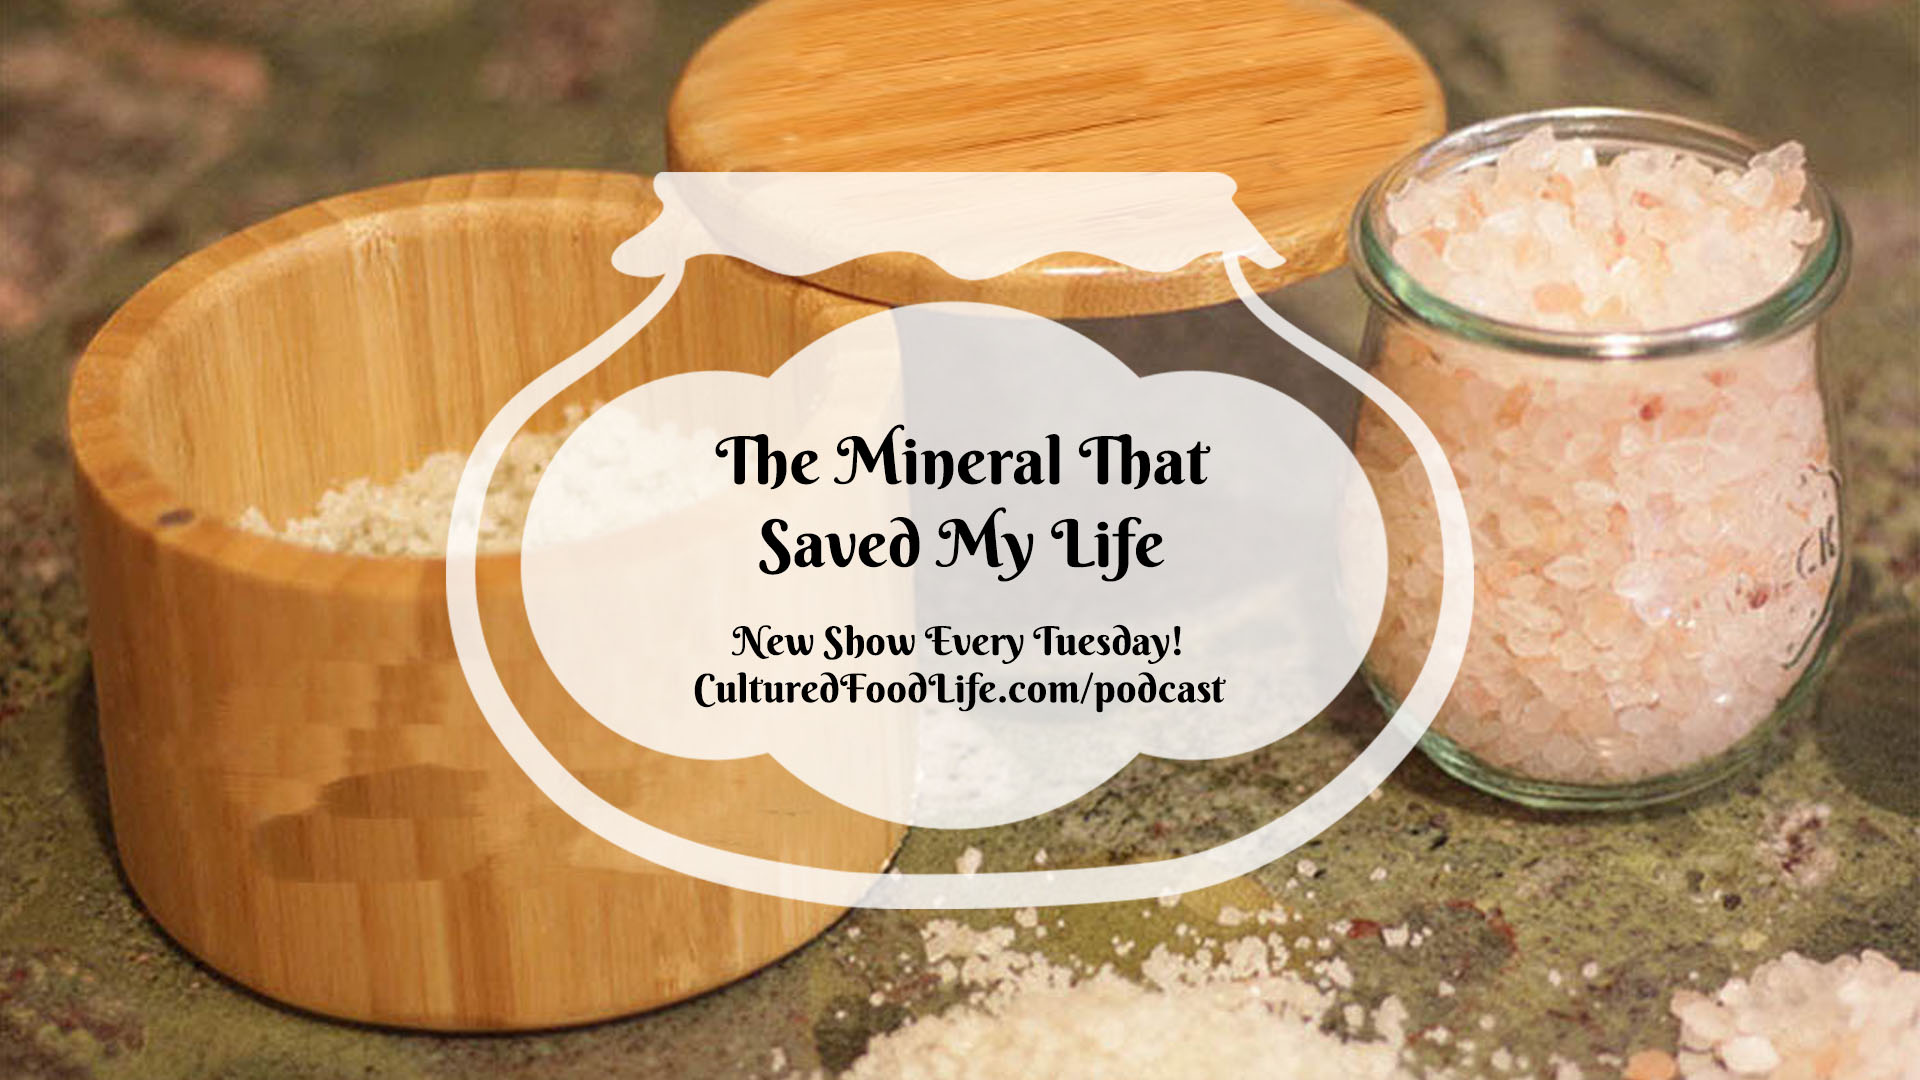 The Mineral That Saved My Life Full